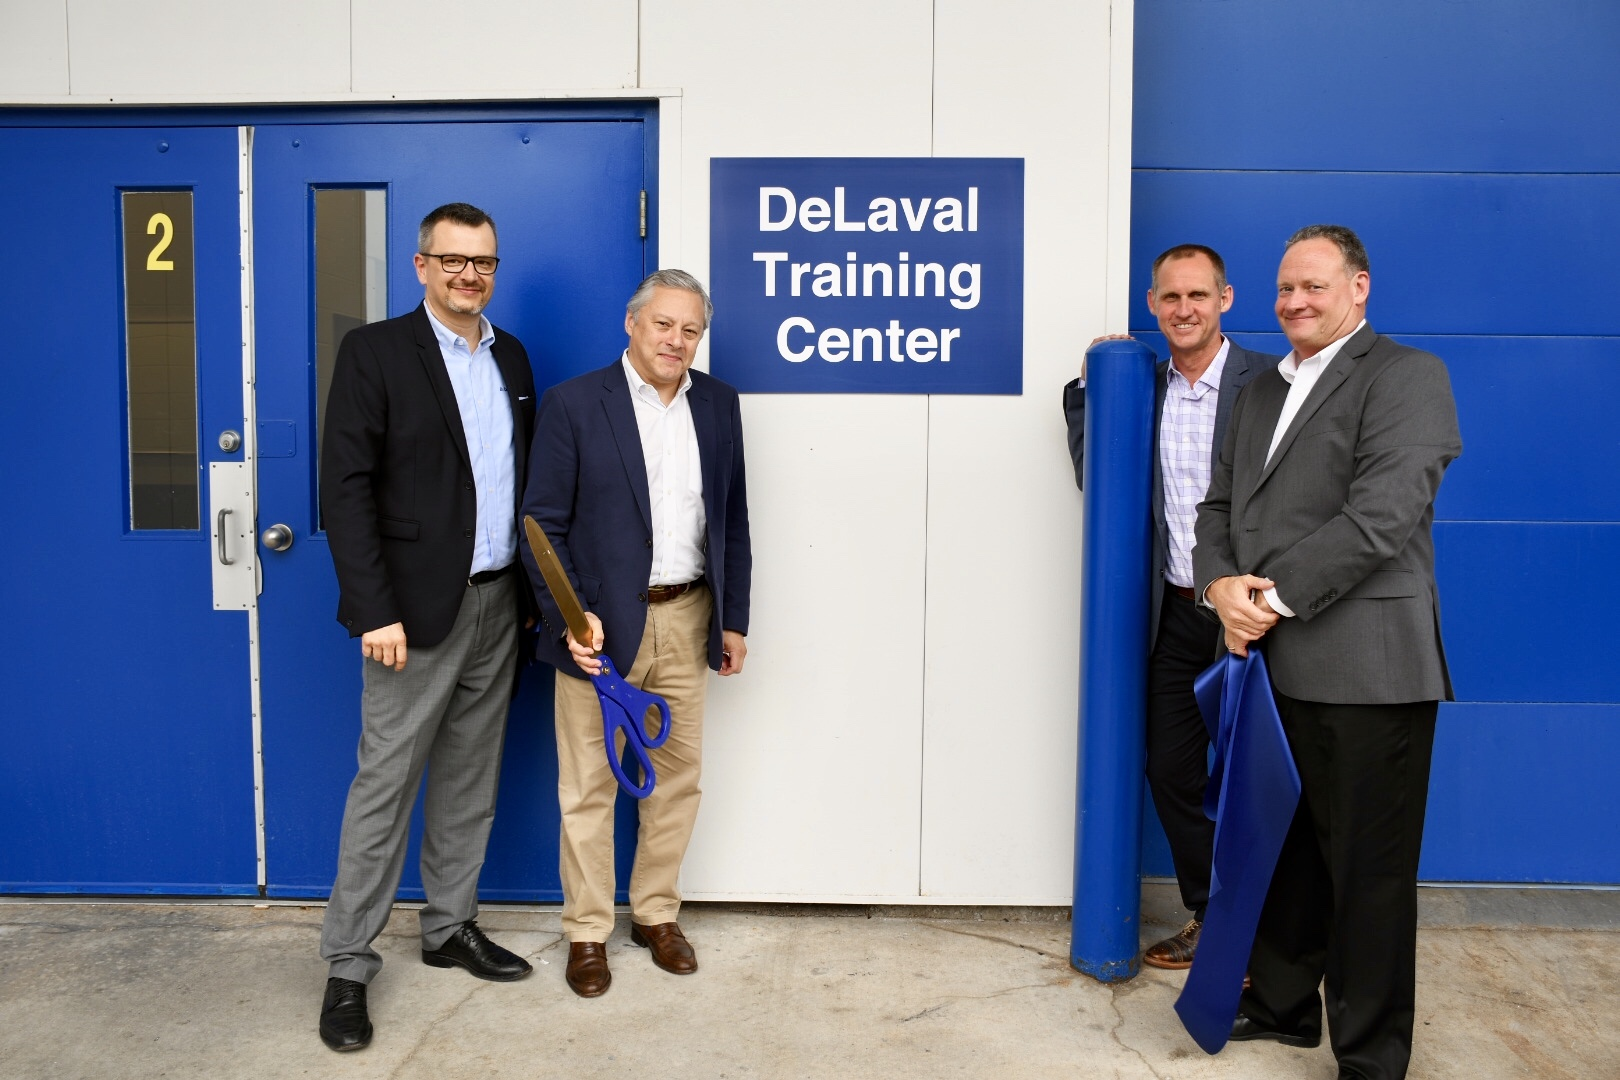 DeLaval Kansas City Training Center